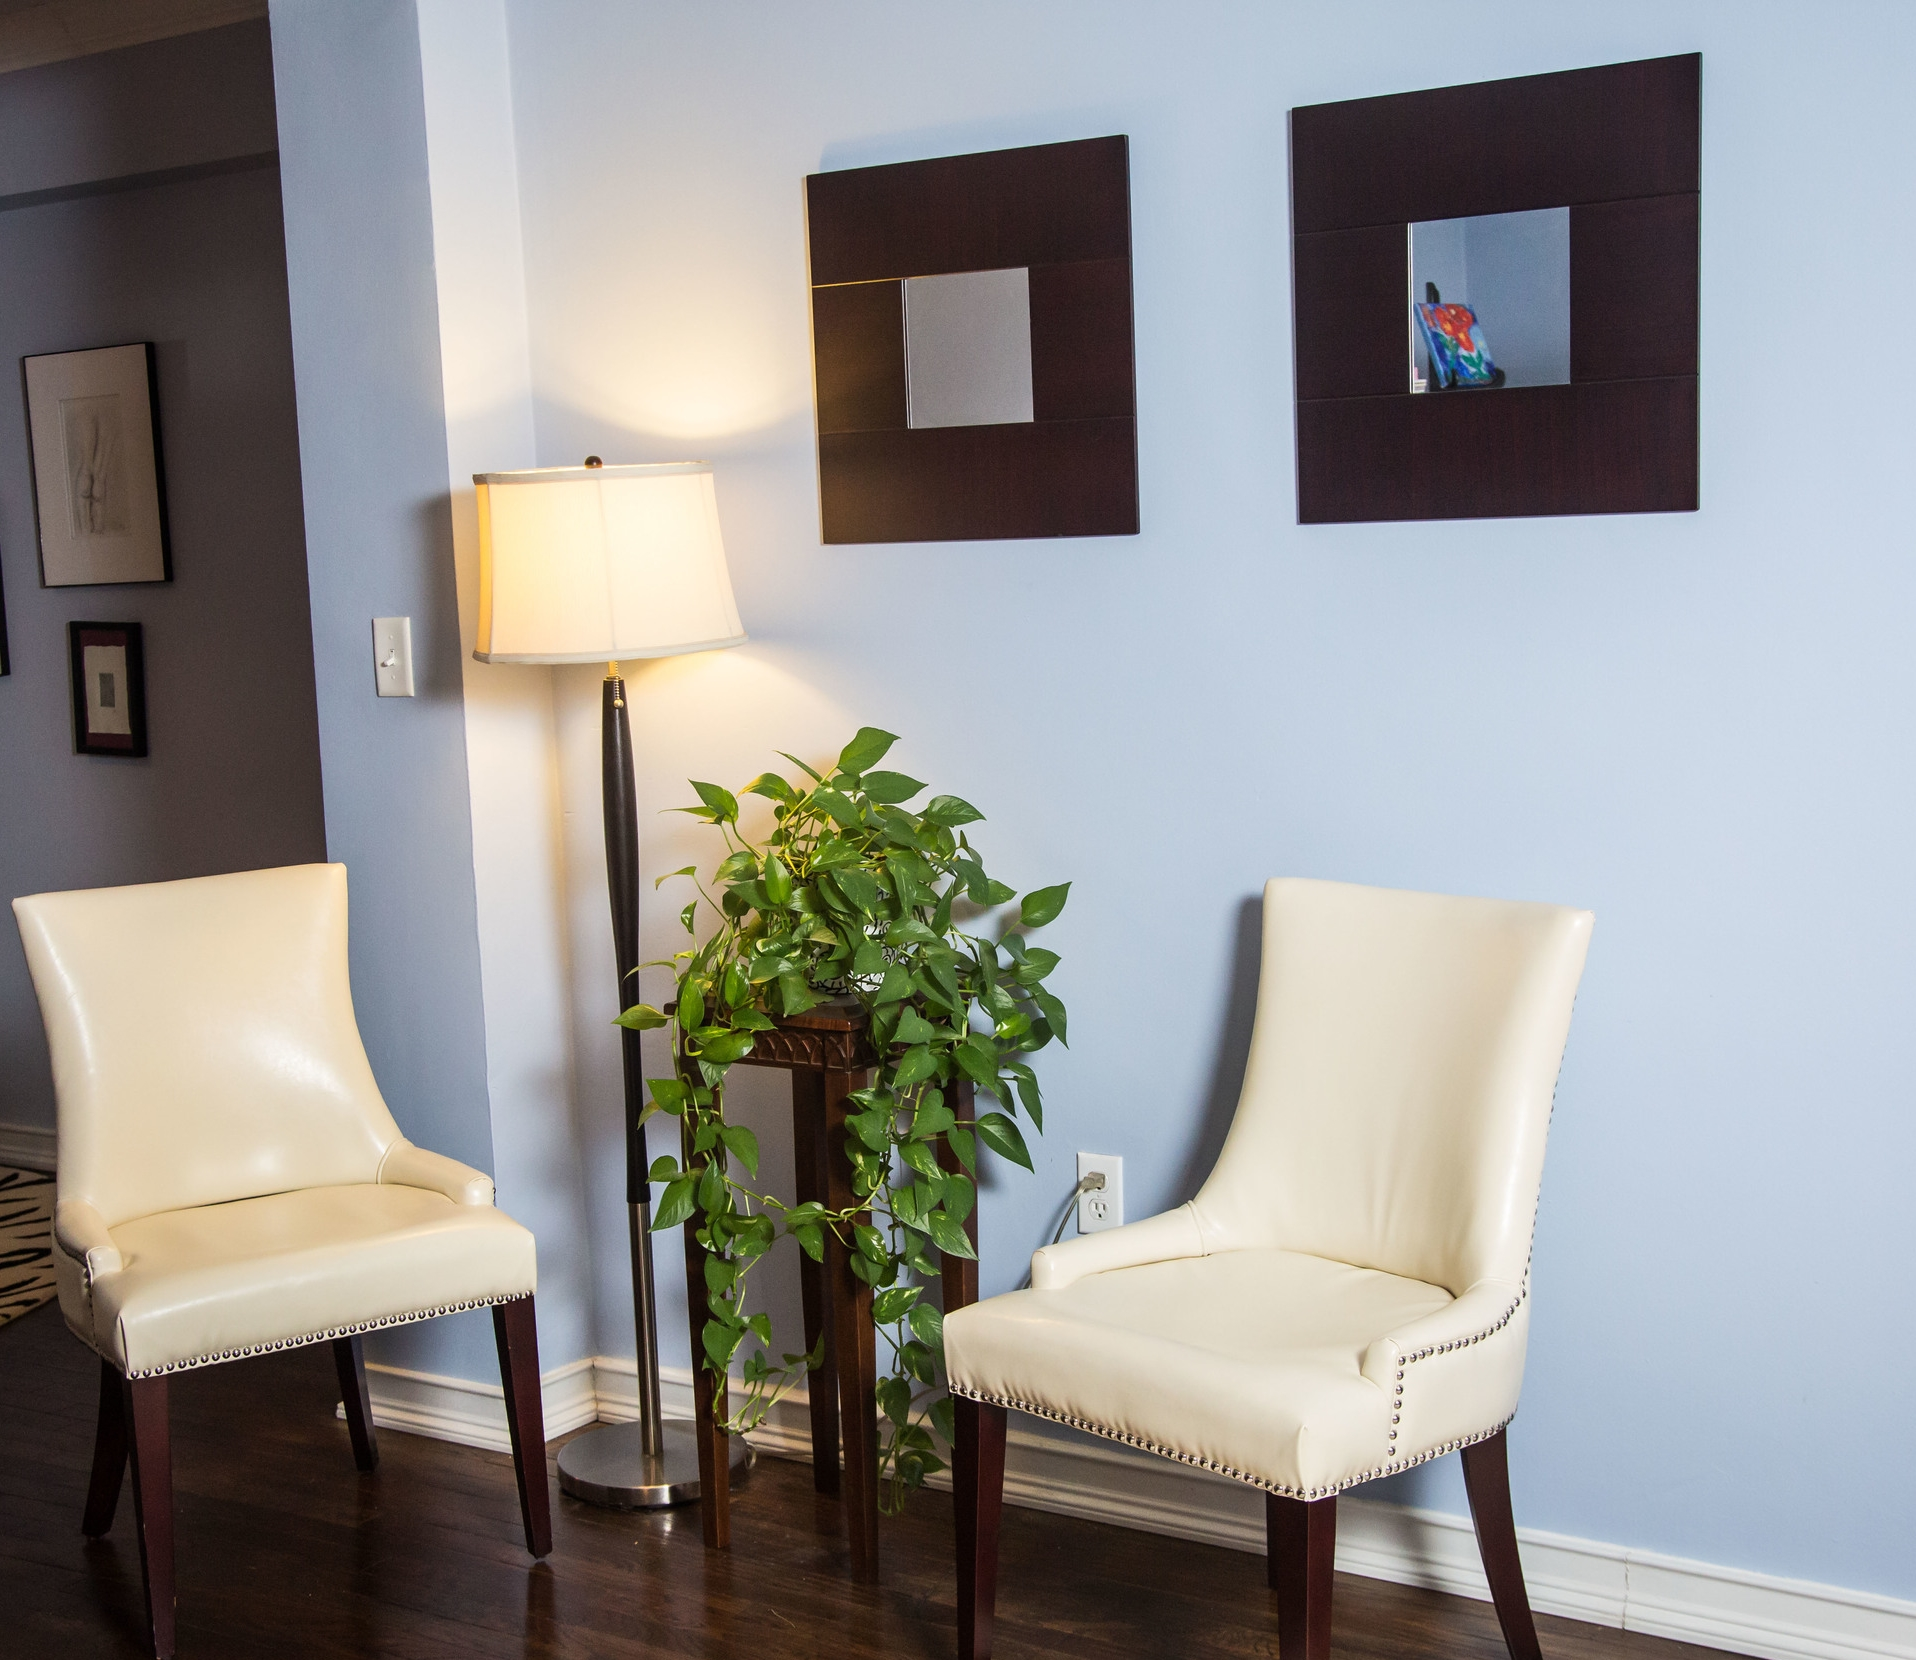 When staging items such as lamps, chairs and plants can add to a space without taking up a lot of room.